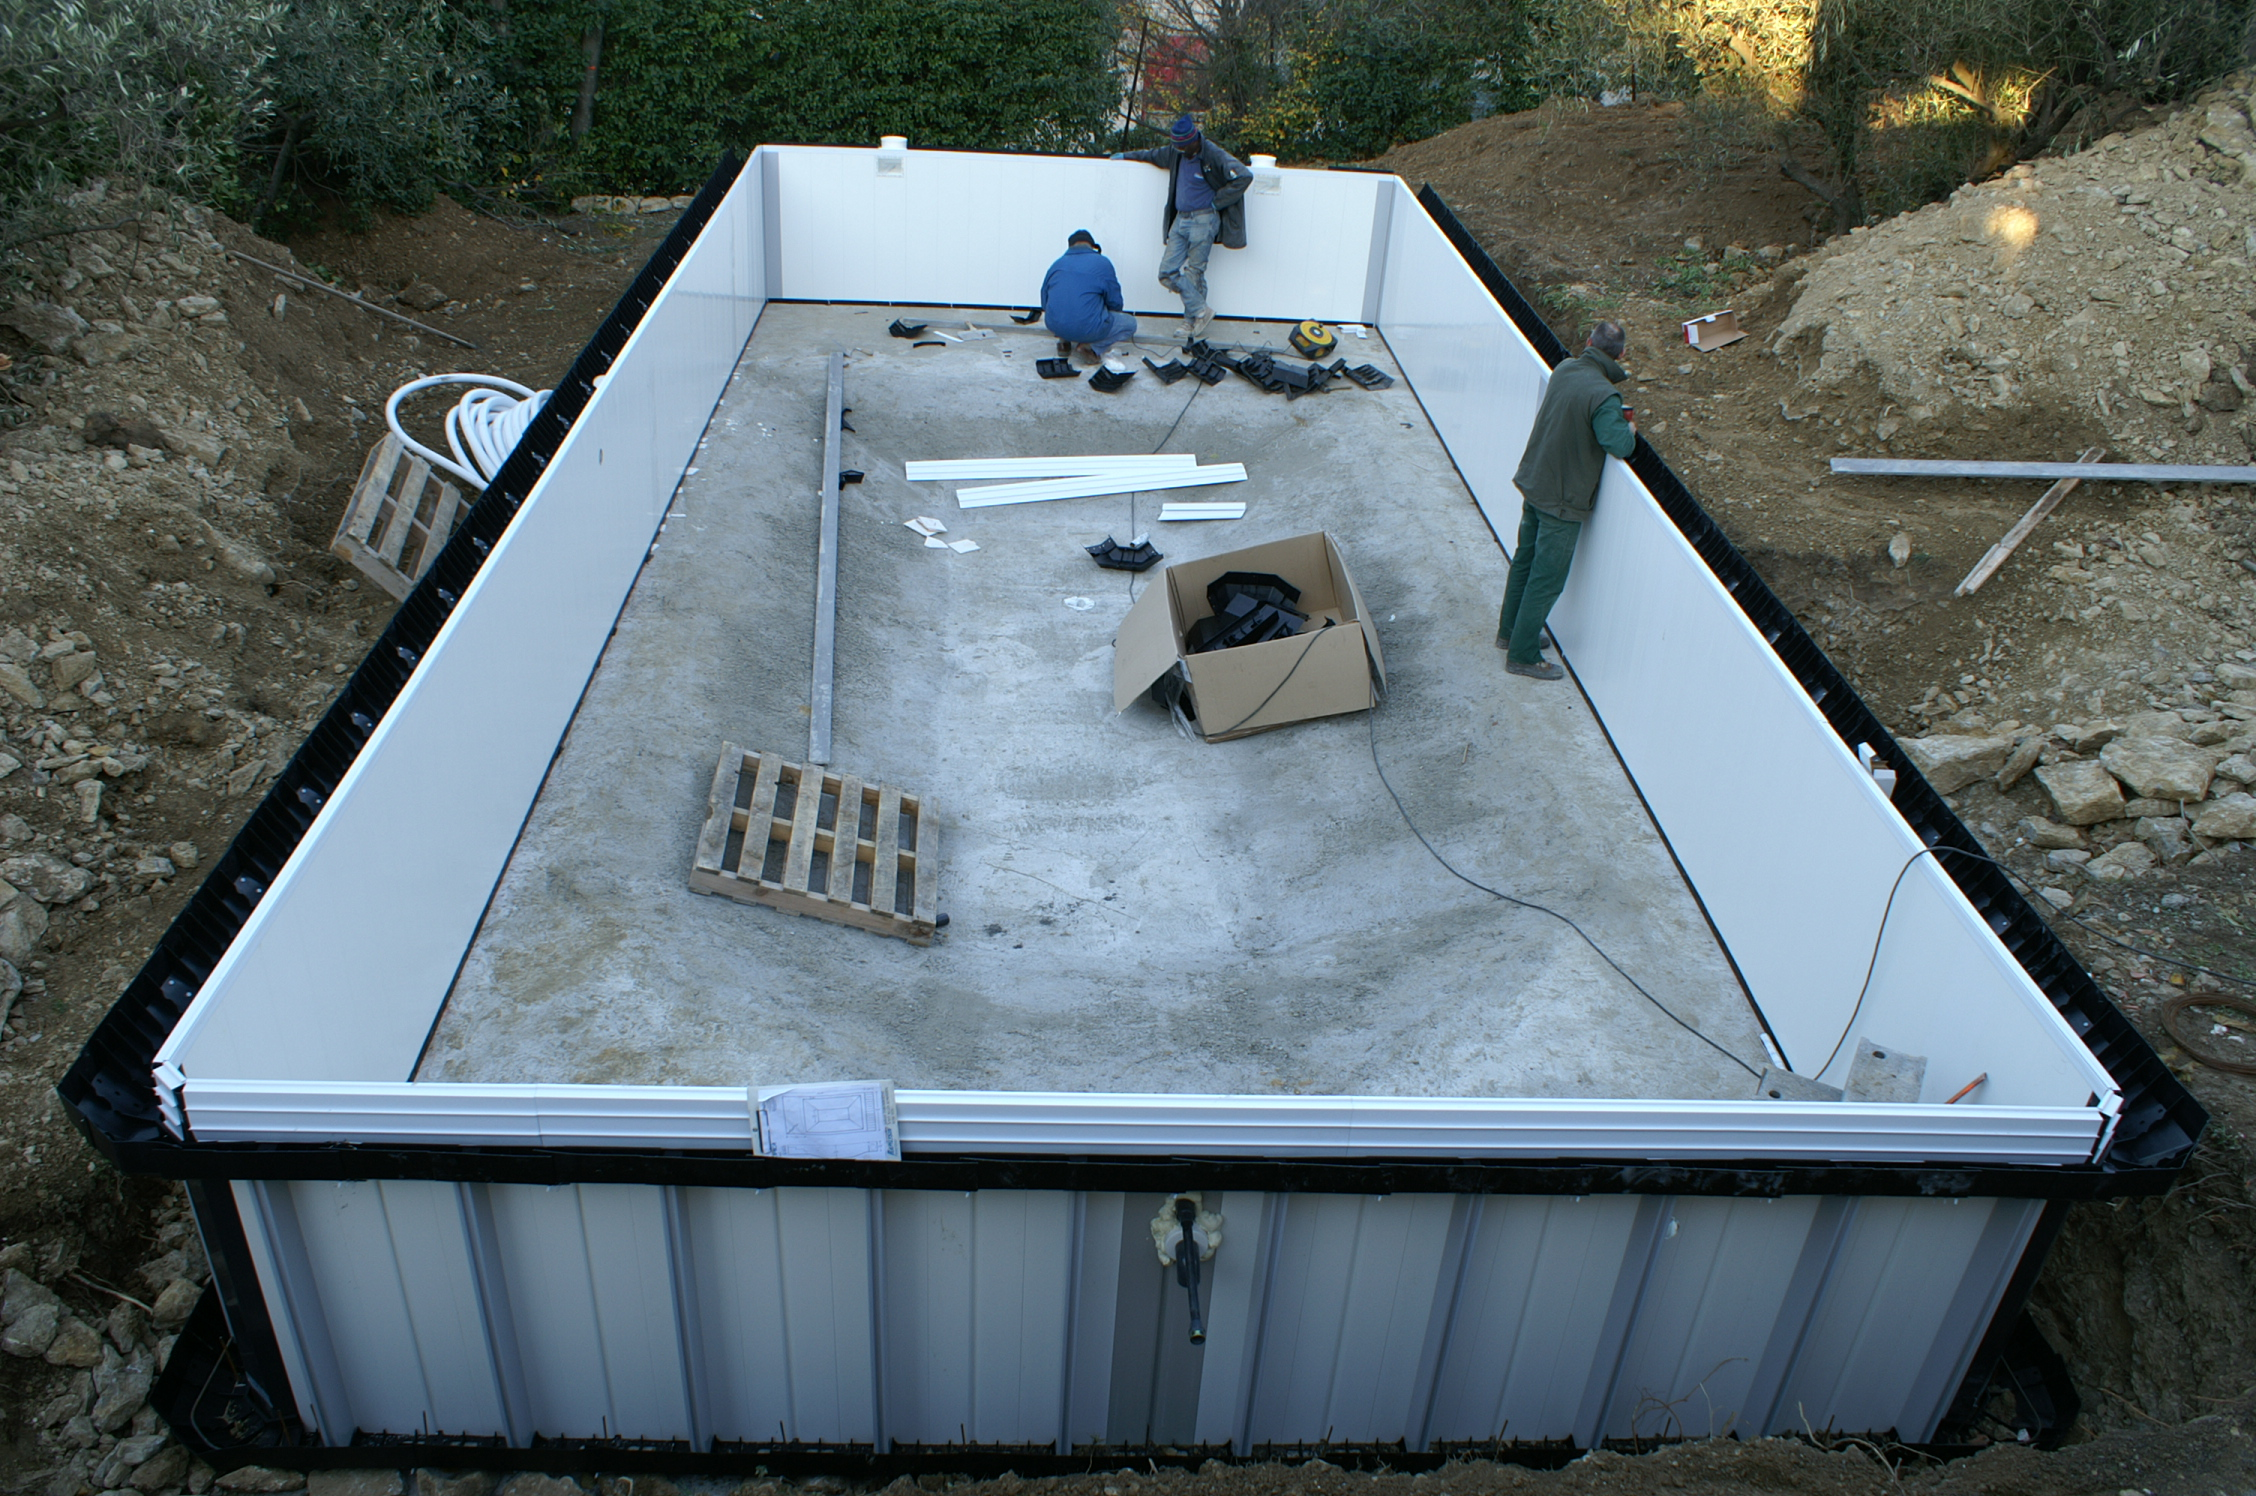 Construction piscines nimes gepad piscines et spa 30000 for Piscine hors sol en beton